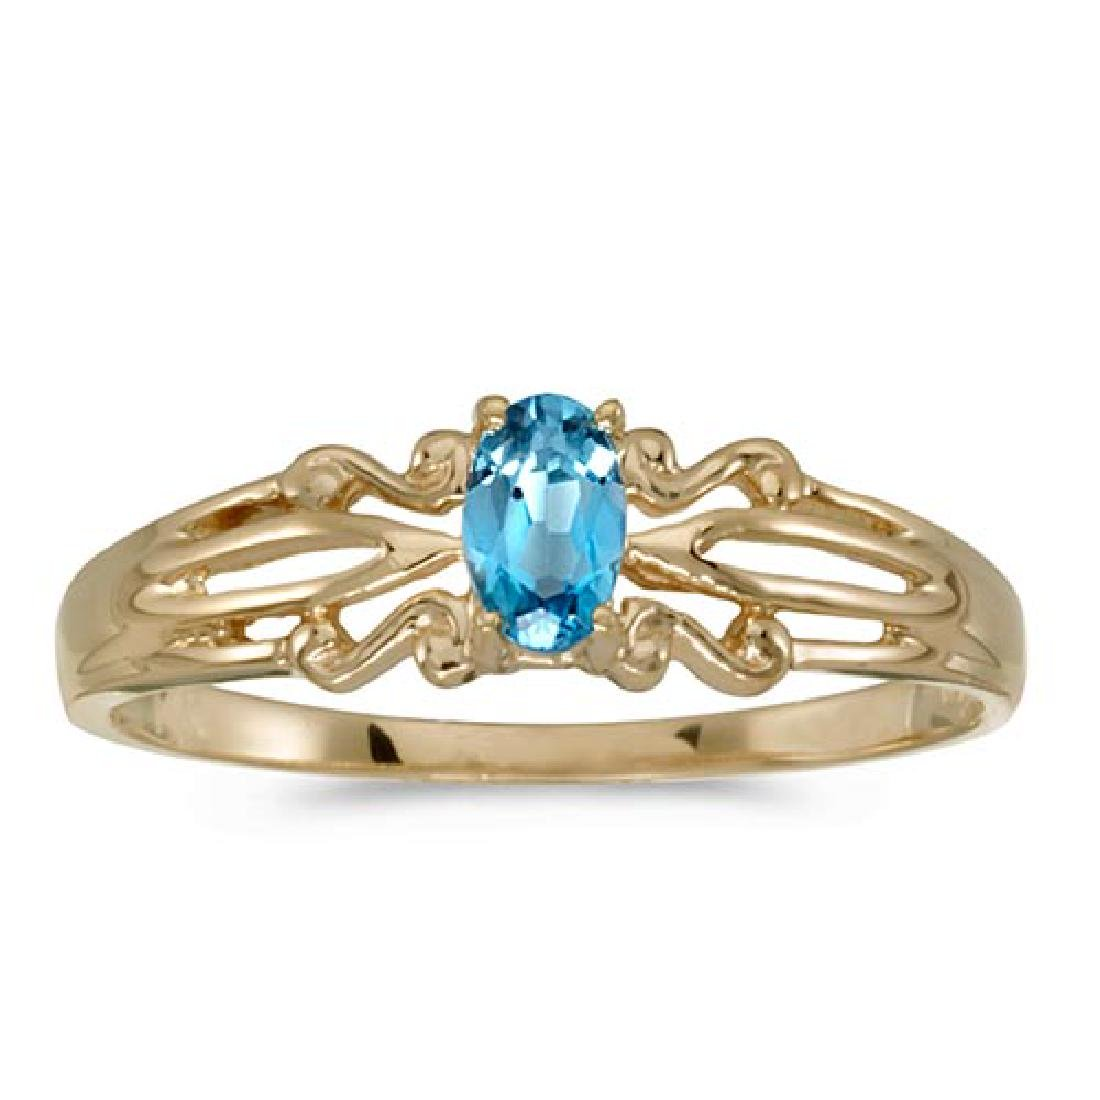 Certified 14k Yellow Gold Oval Blue Topaz Ring 0.19 CTW